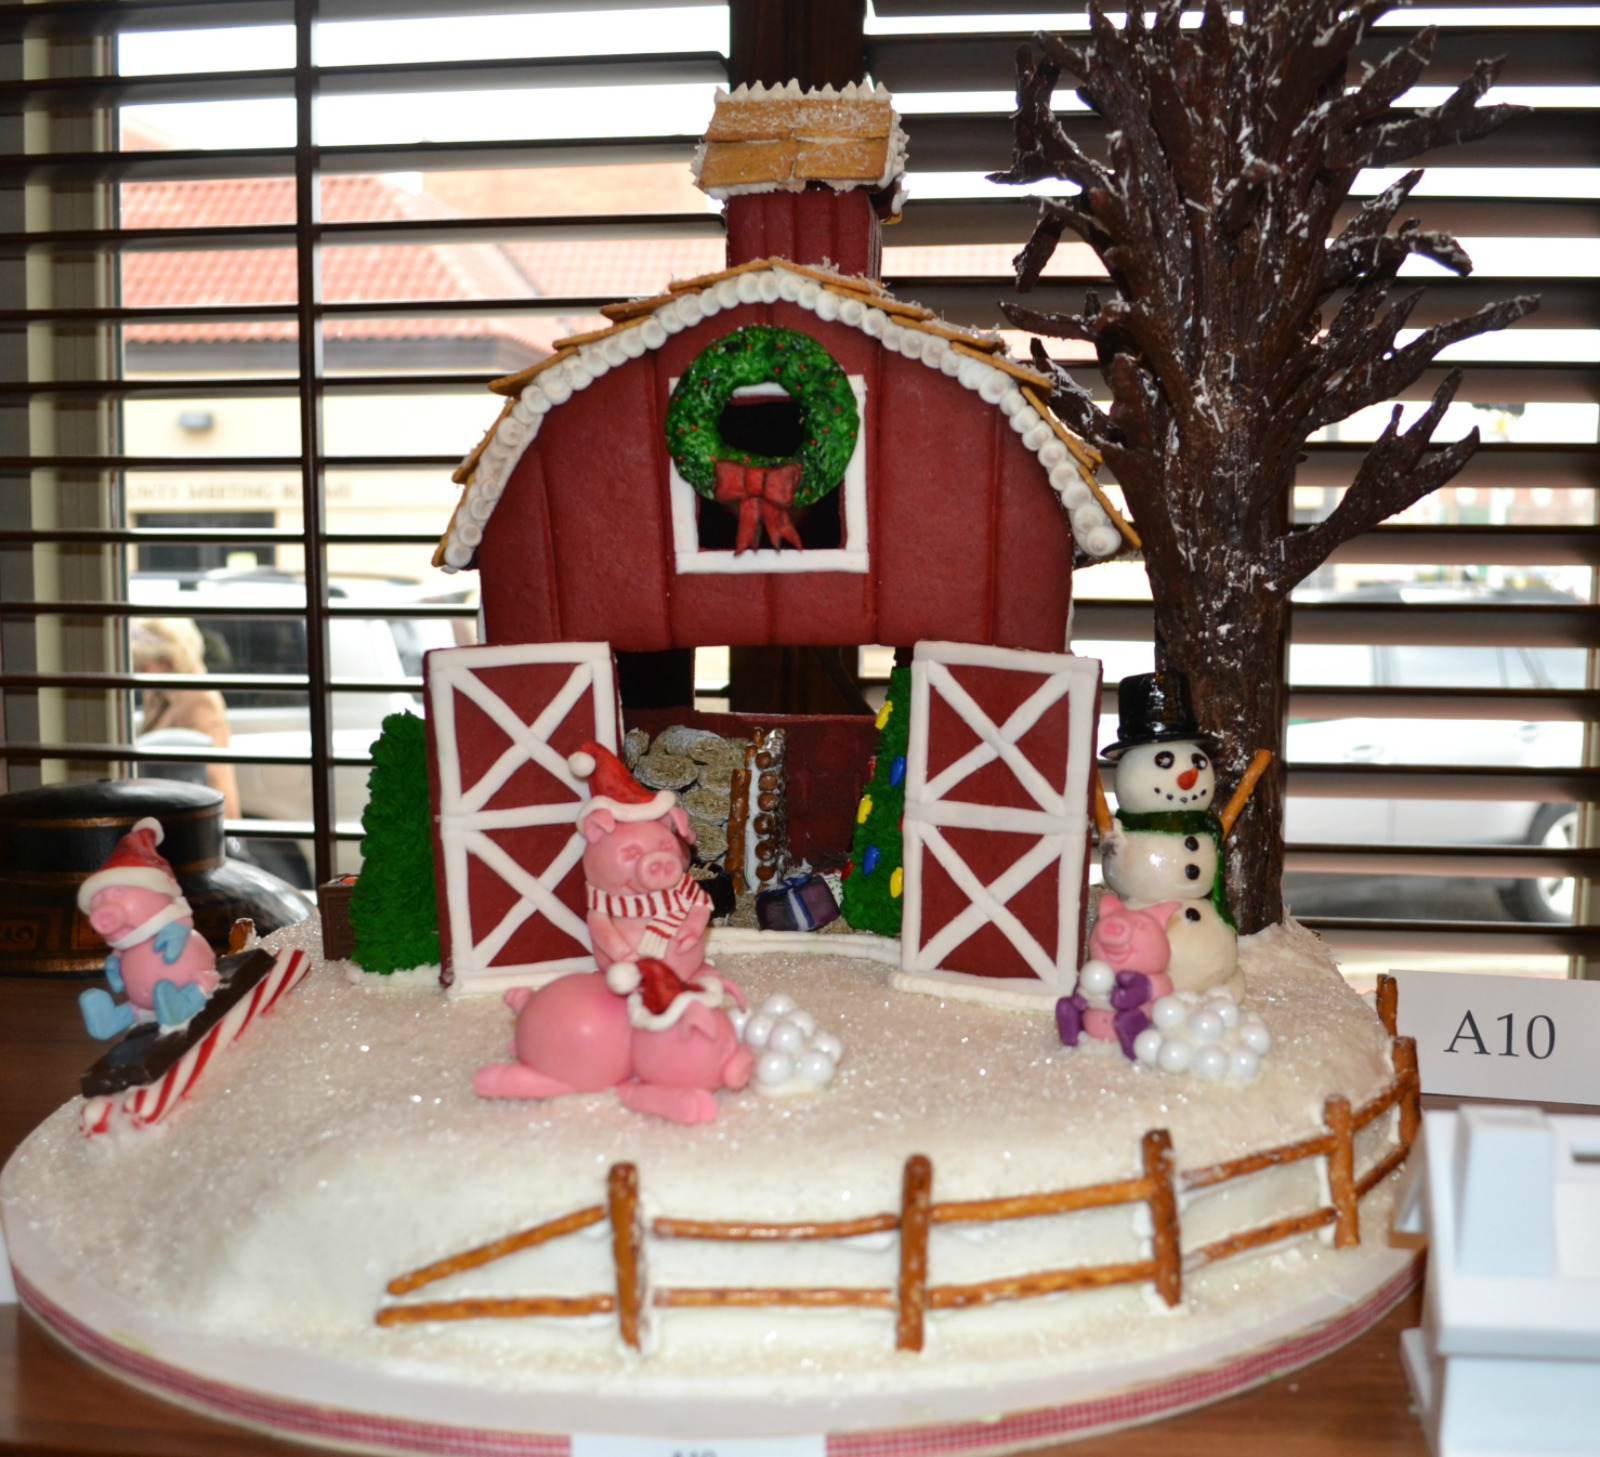 display of gingerbread houses